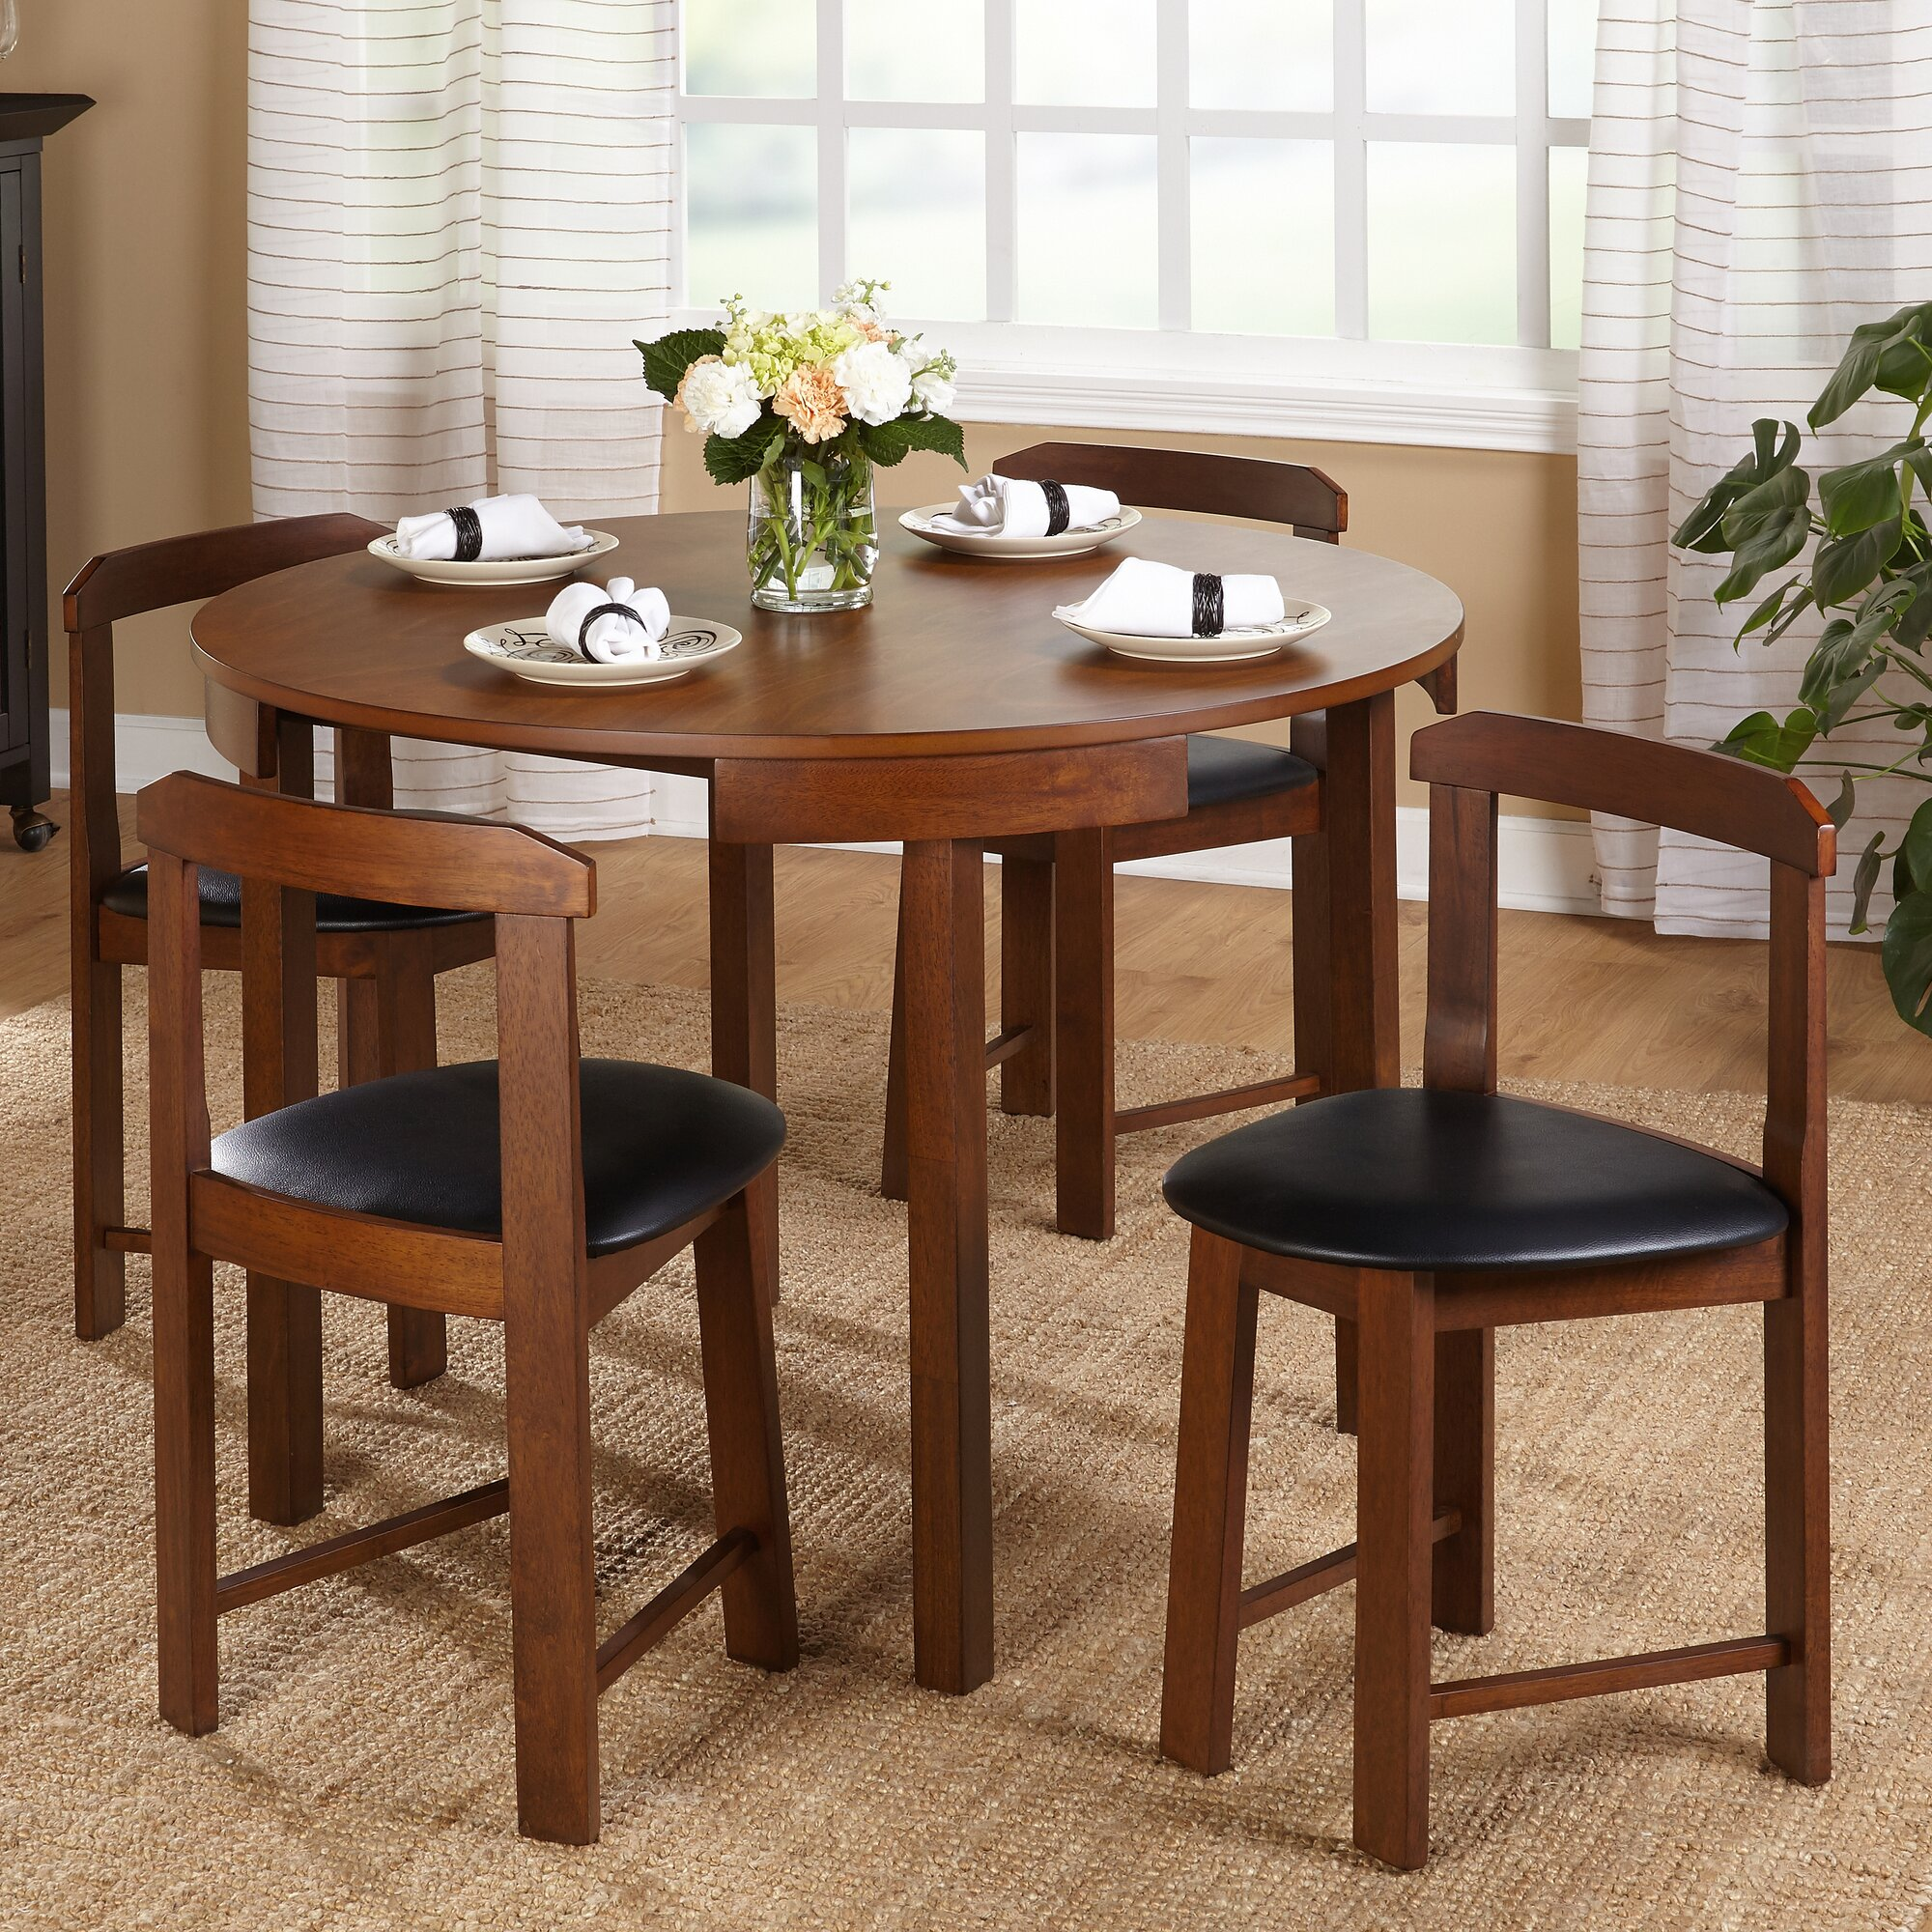 Round dining room sets - Round Dining Room Sets 43